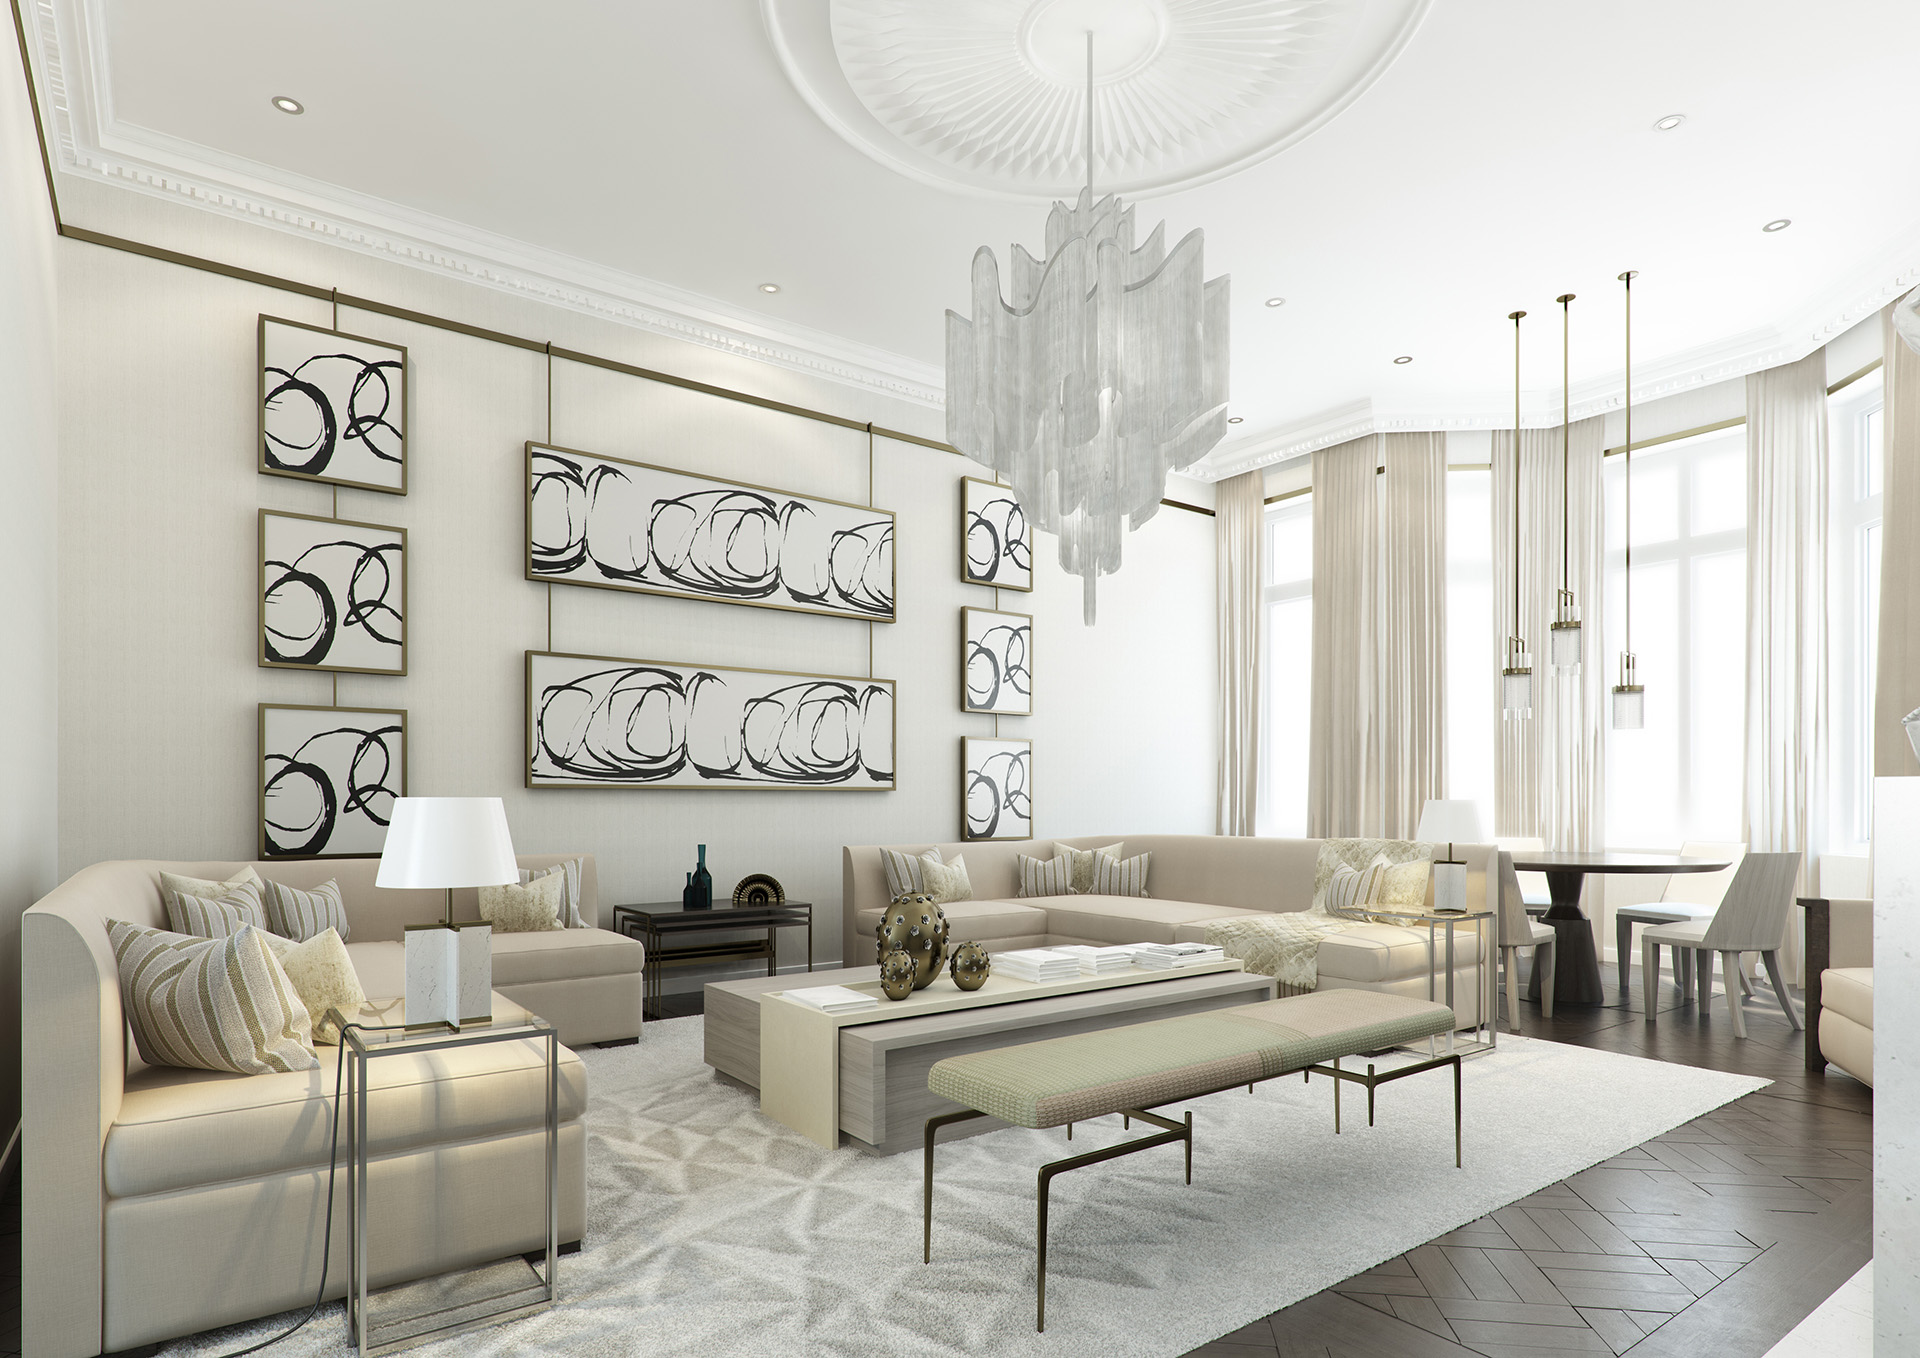 3D Modern Contemporary Living Room Interior Illustration